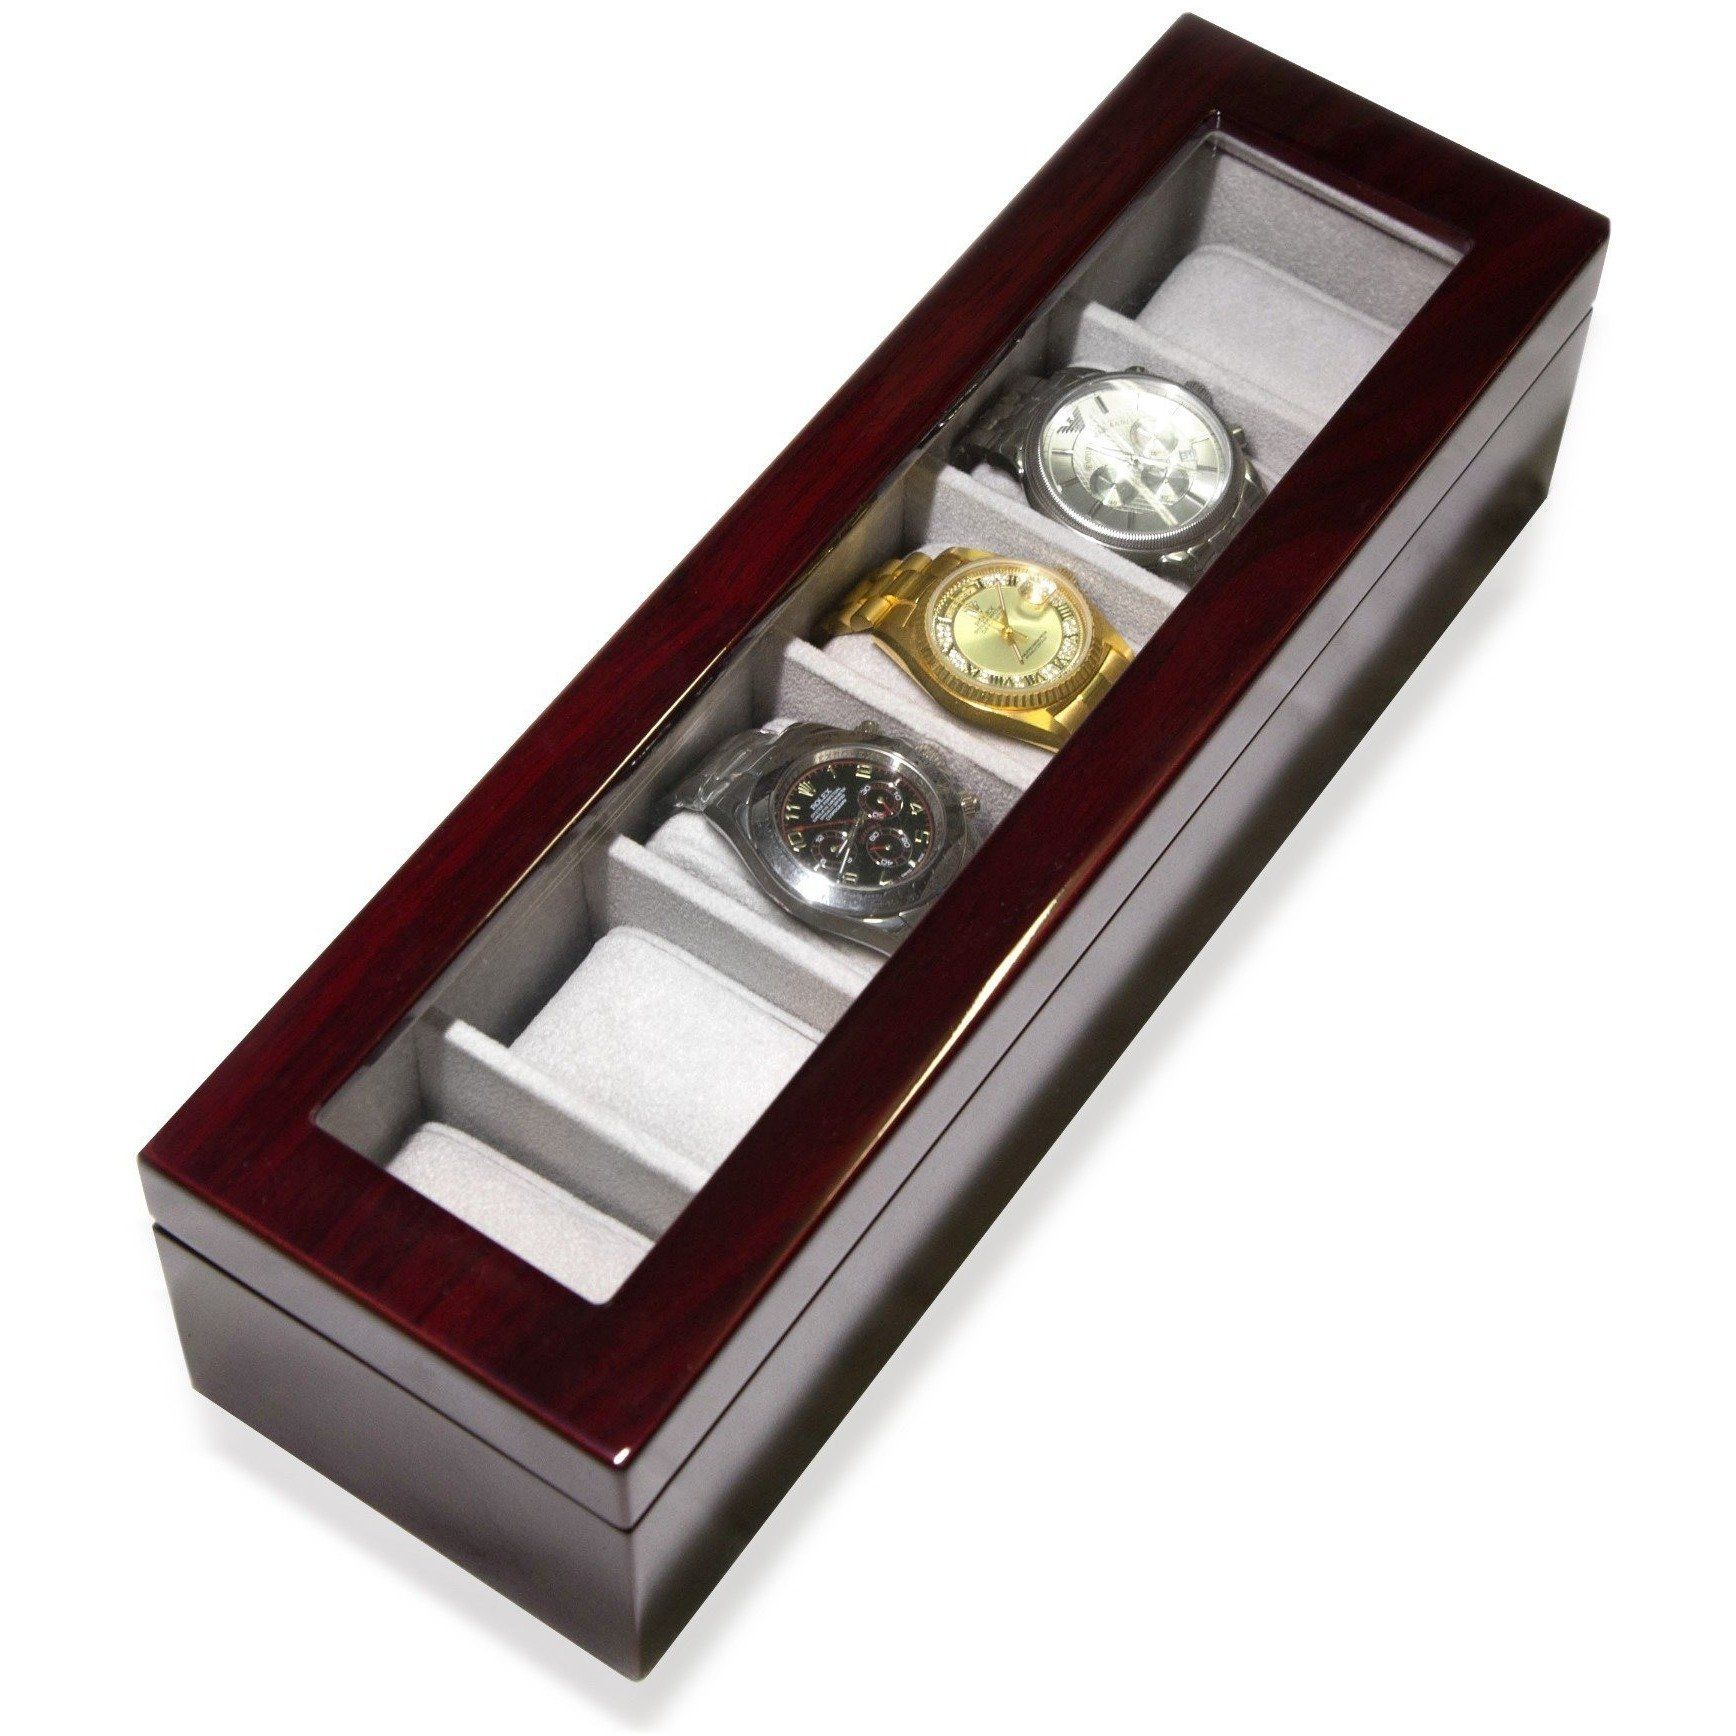 Long Watch Box with Glass Top 6 Compartments Mahogany, Storage Boxes, Cuffed.com.au, CB3420, $99.00